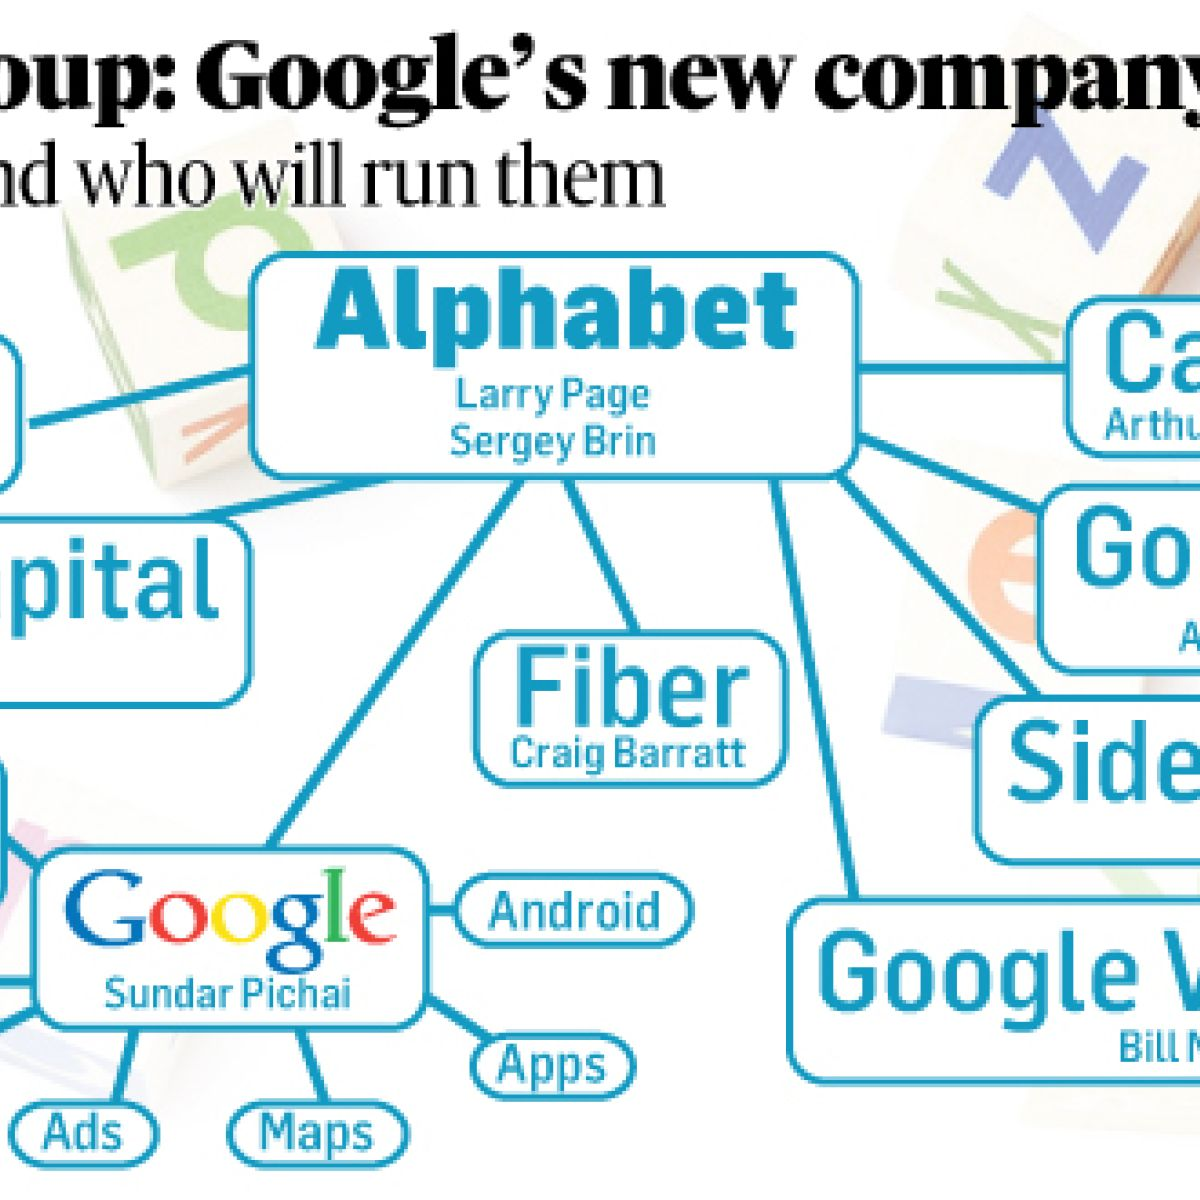 Why Google played the Alphabet card